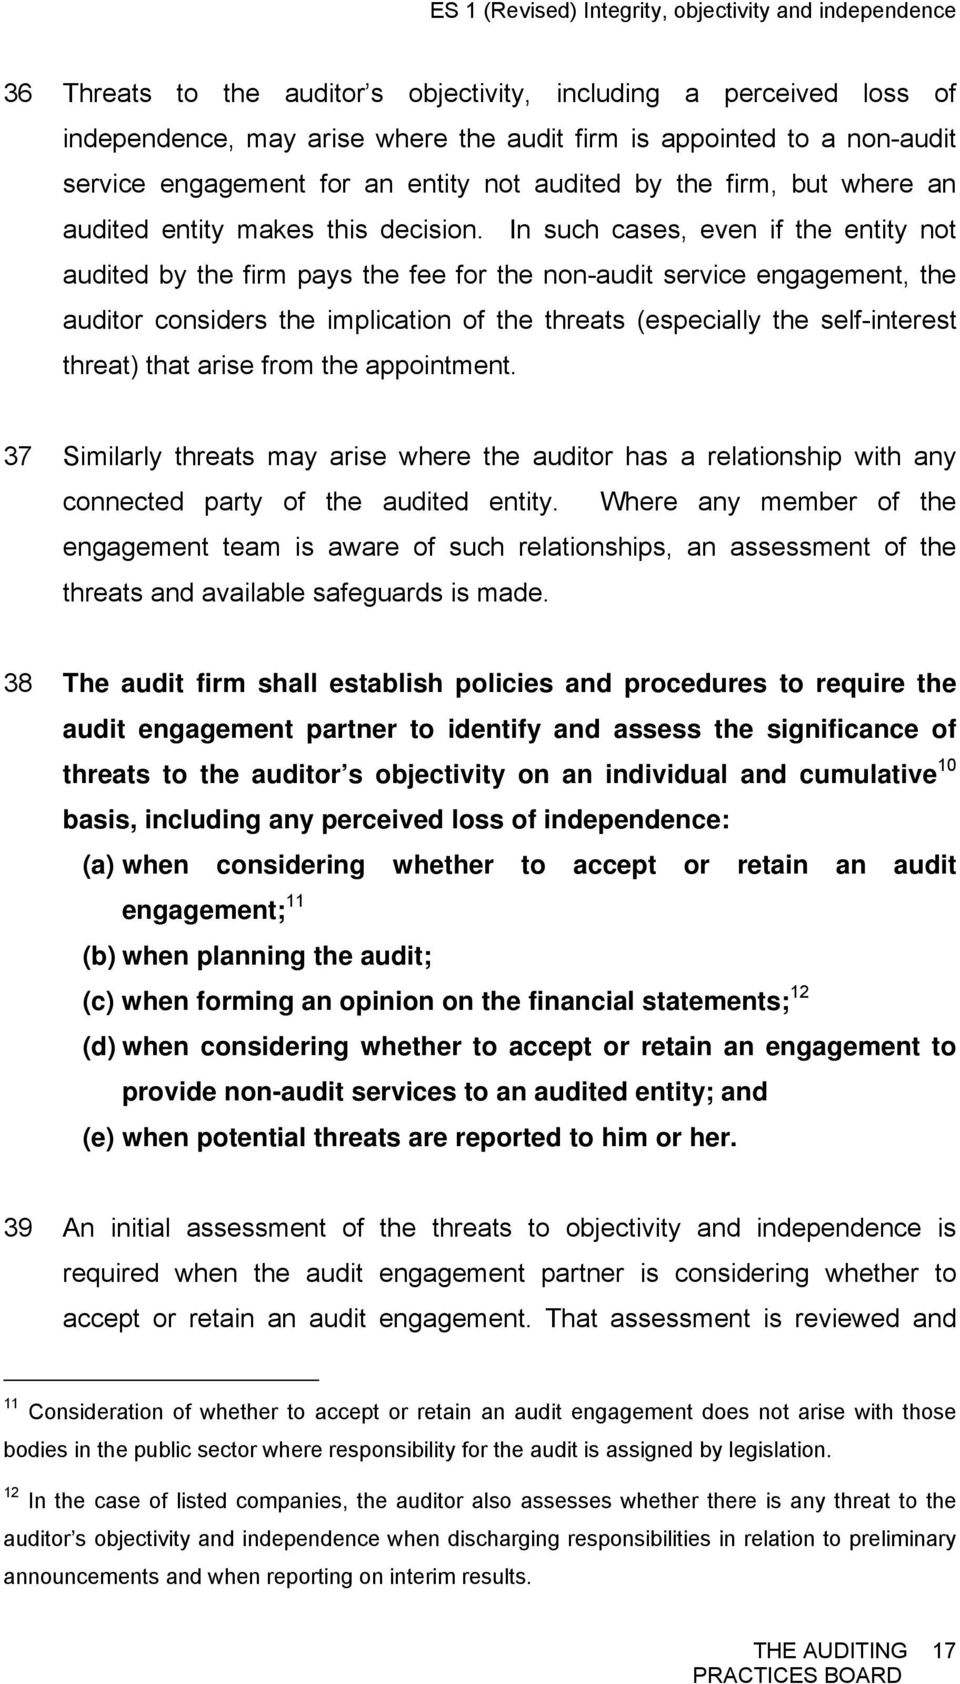 In such cases, even if the entity not audited by the firm pays the fee for the non-audit service engagement, the auditor considers the implication of the threats (especially the self-interest threat)